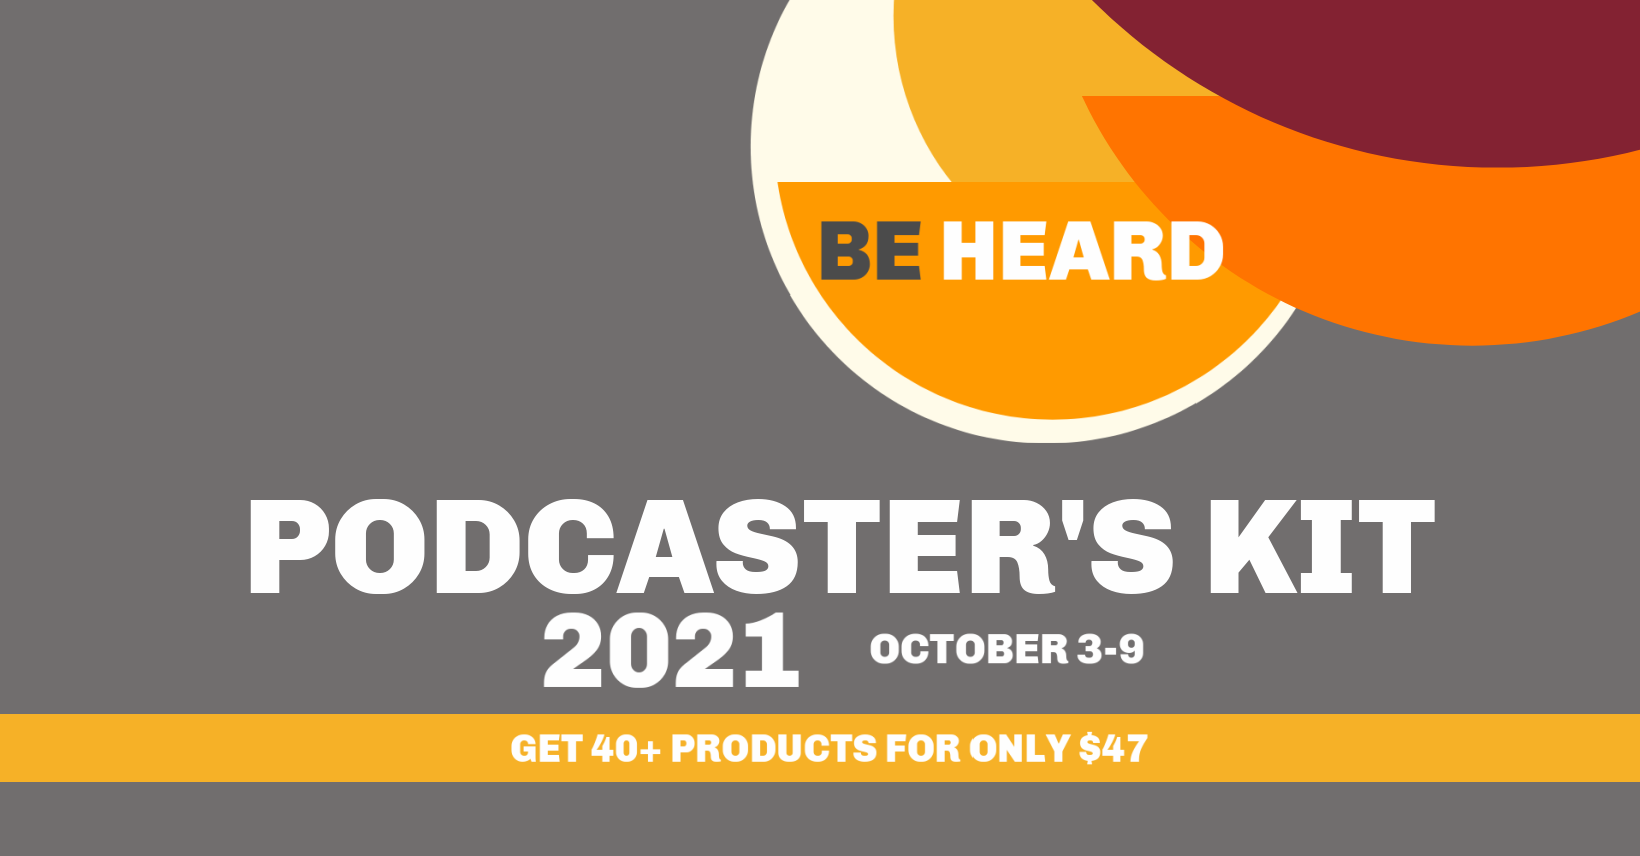 Podcasters Kit 2021